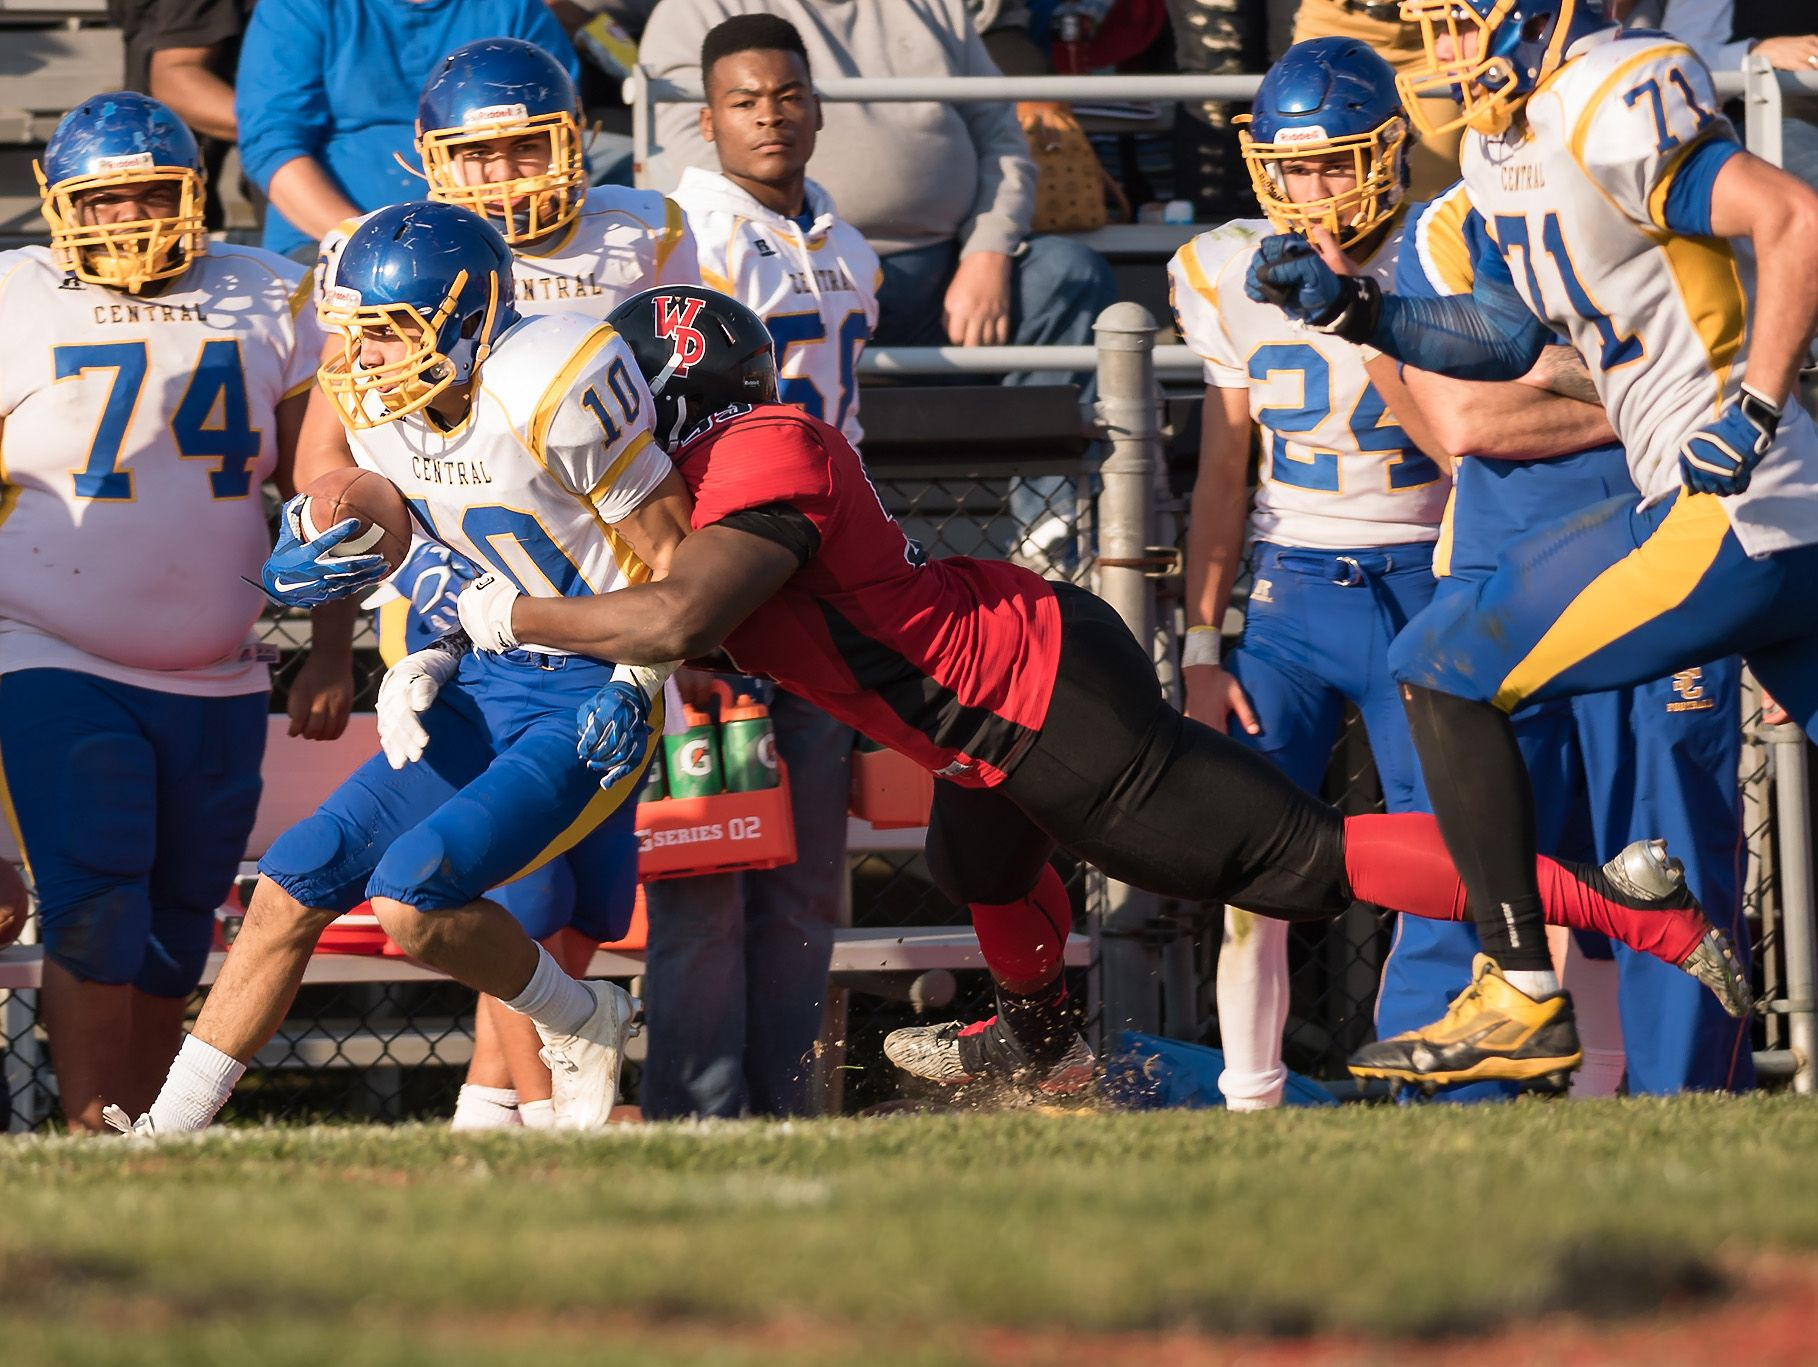 Drew Morris of Sussex Central is tackled by William Penn as Sussex Central plays at William Penn in the opening round of DIAA Division II playoffs.